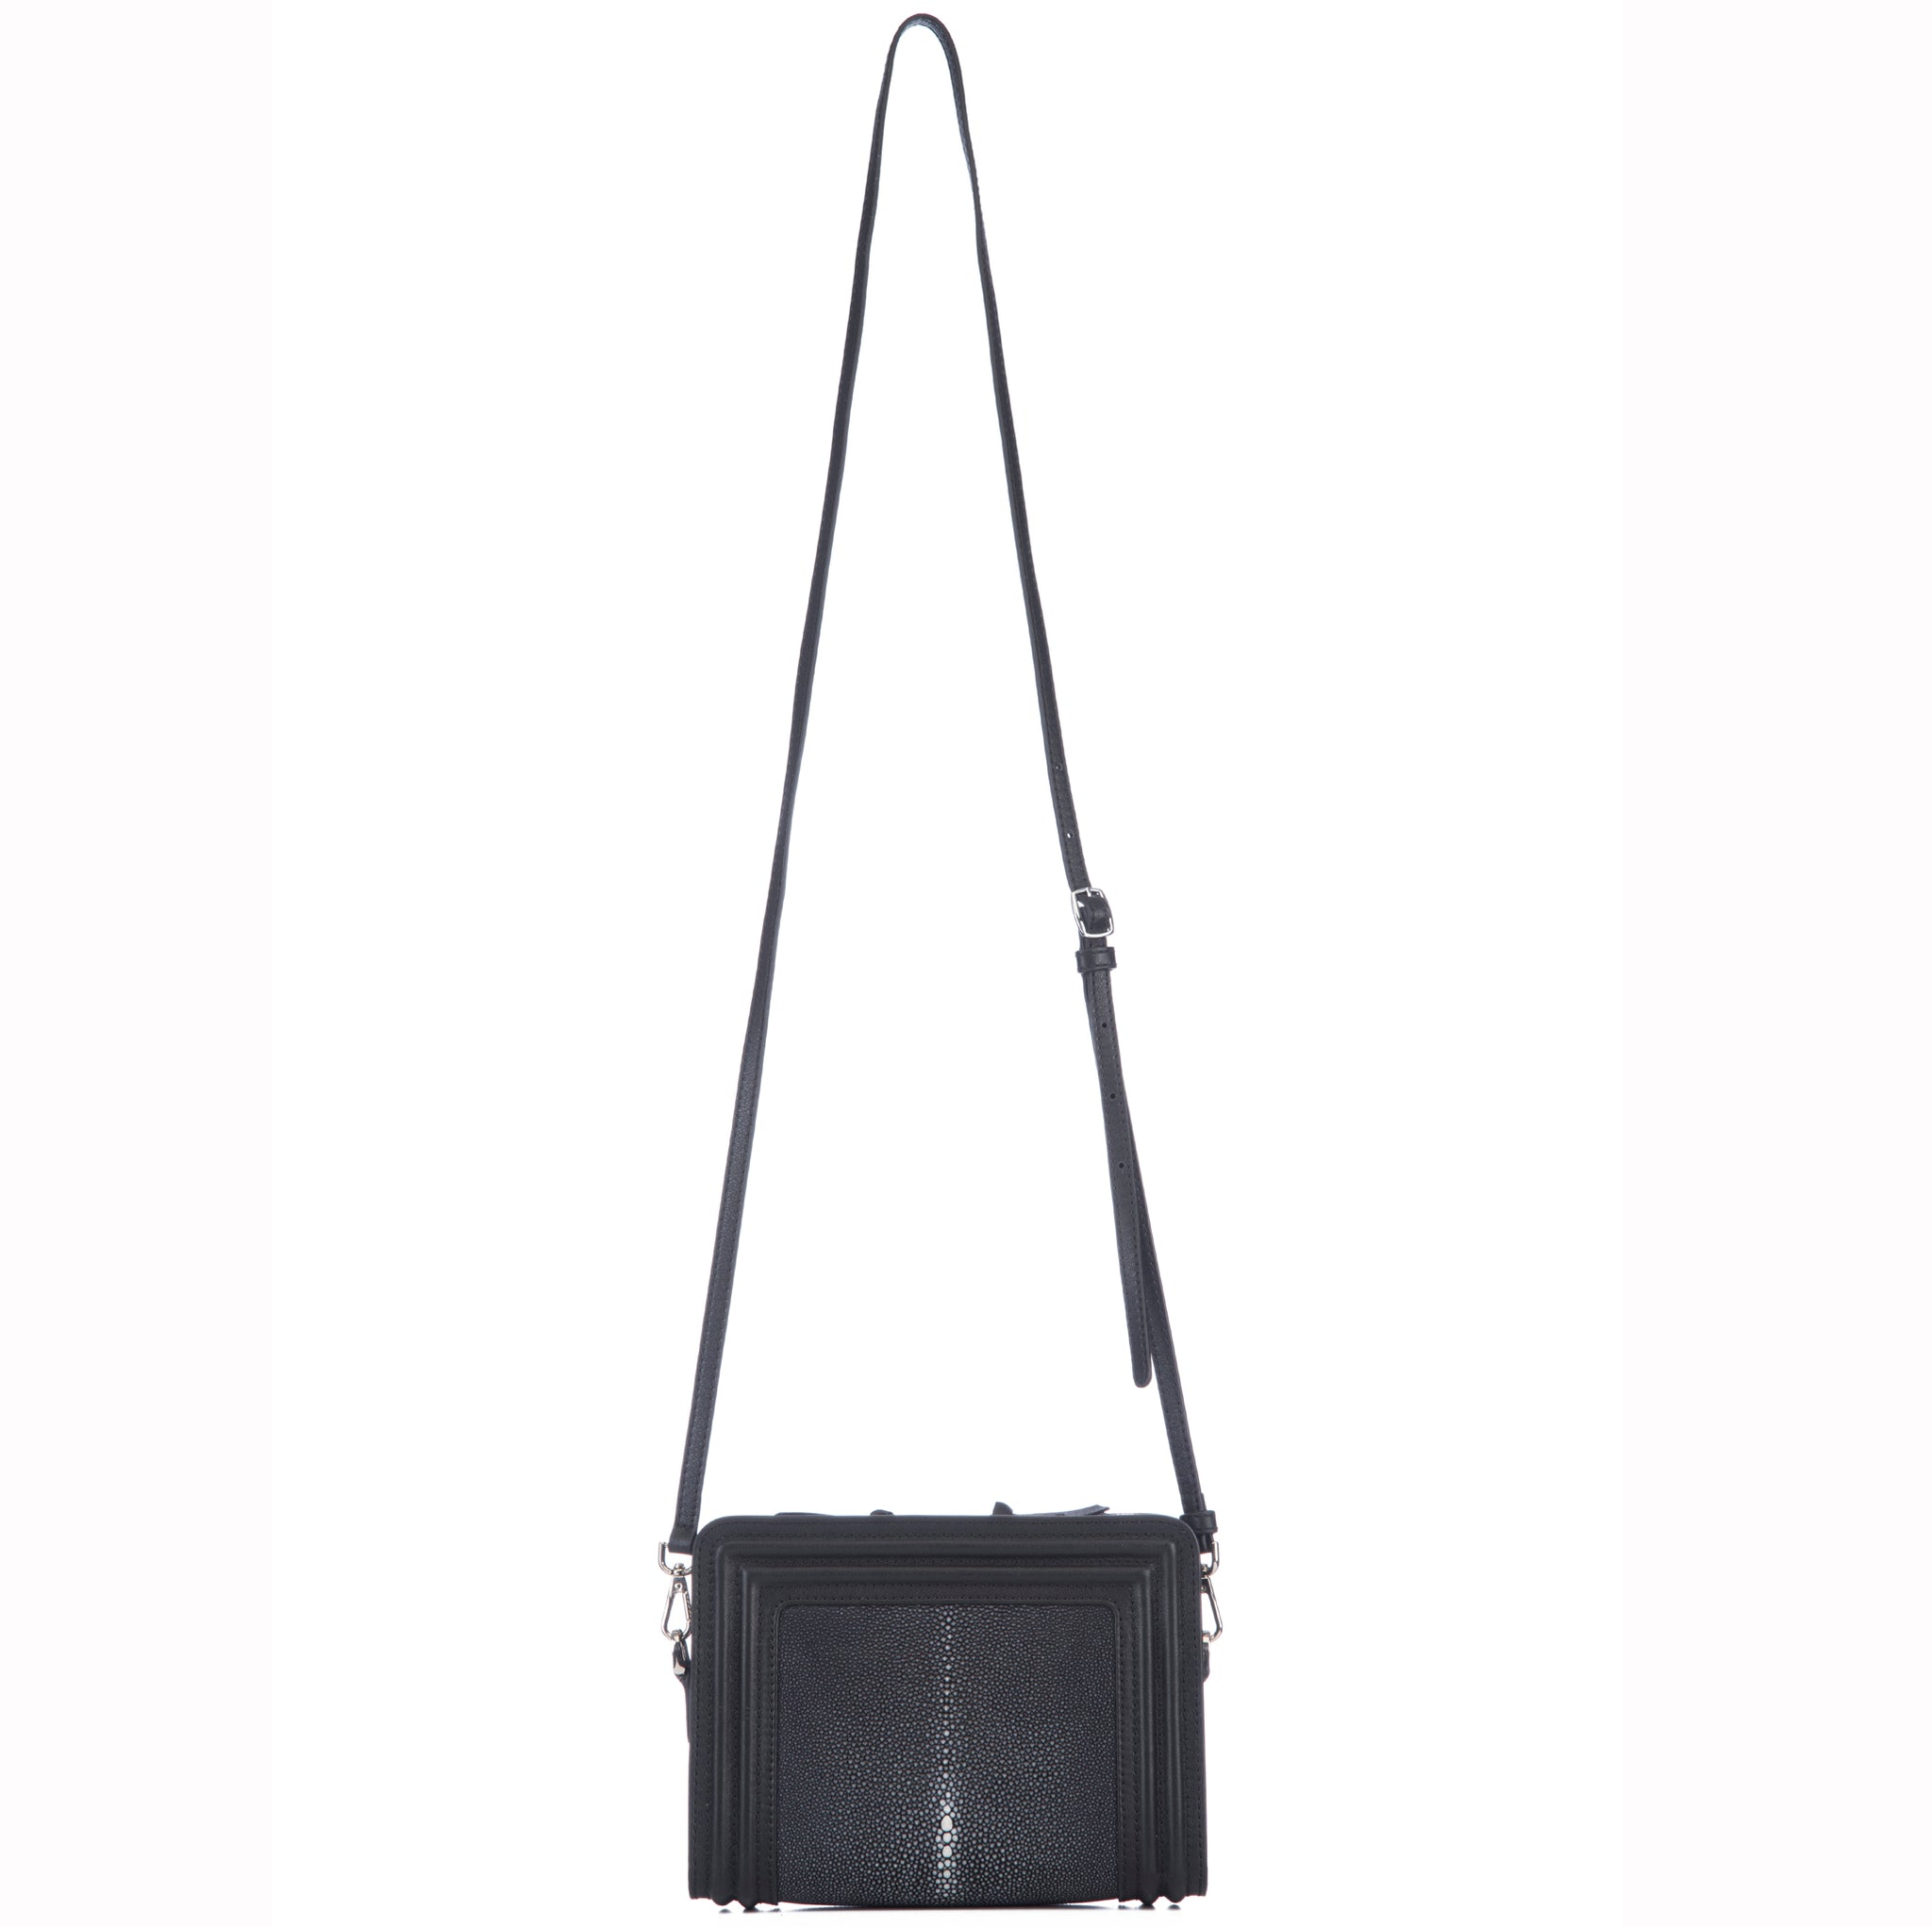 Black Corded Leather Frames Black Stingray Double Zipper Top Cross Body Bag Shoulder Strap View Nora - Vivo Direct